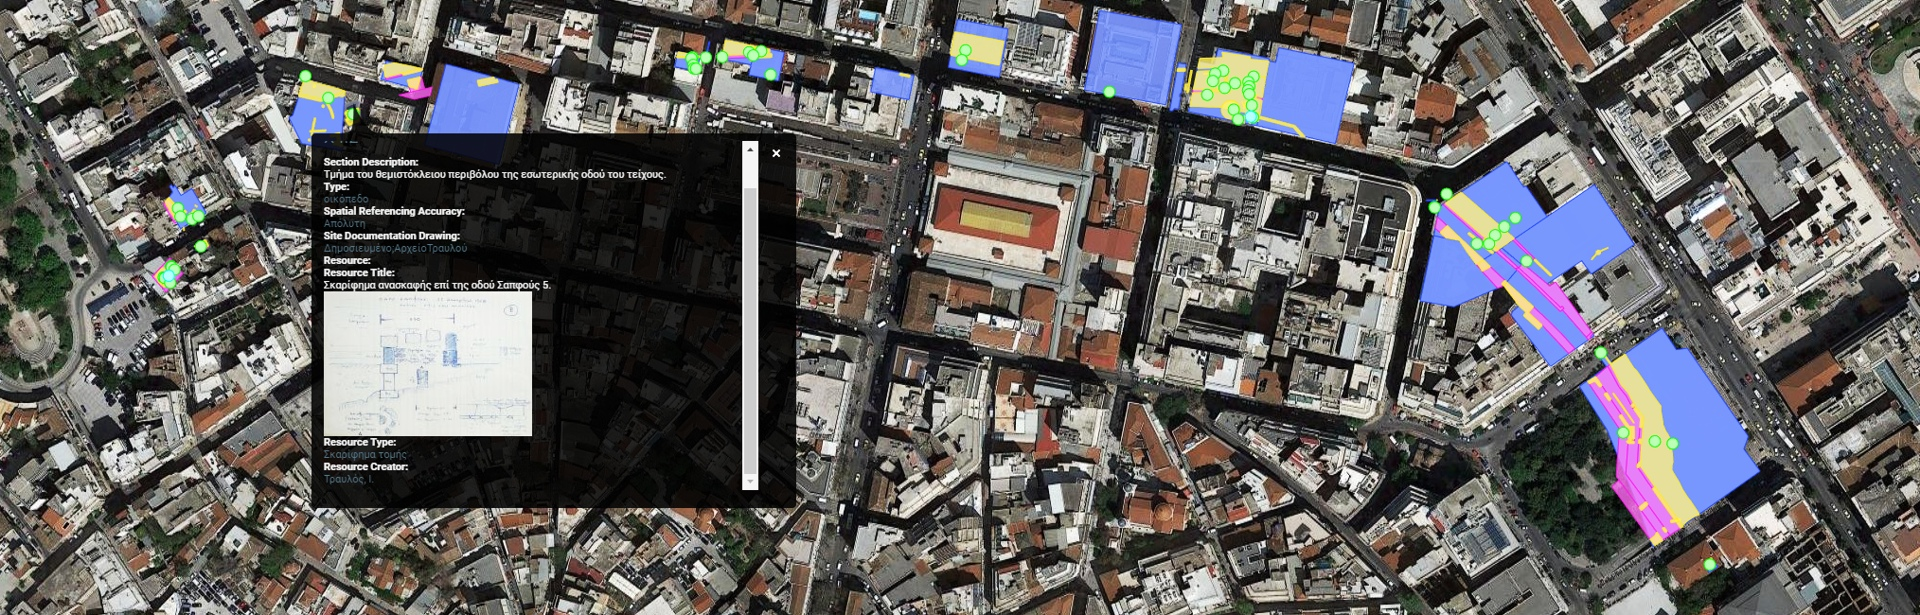 Web-GIS platform currently under development from Dipylon for mapping the urban archaeology of Athens.